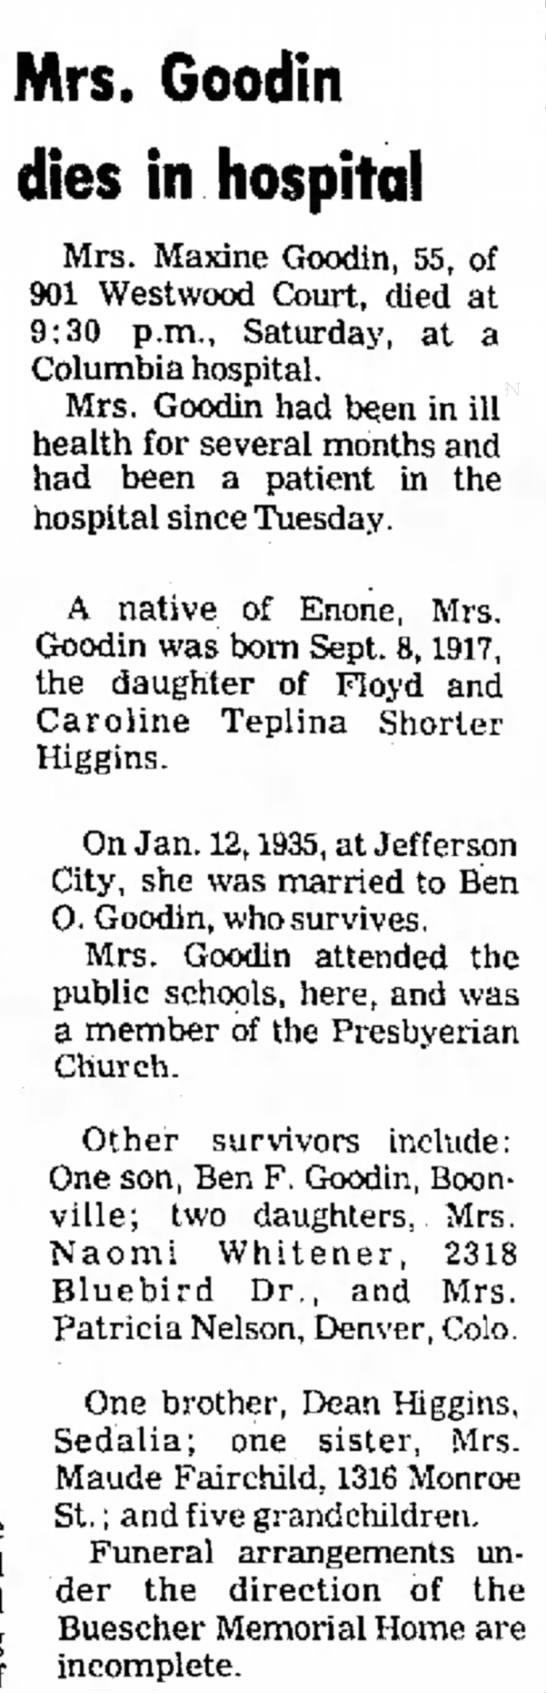 Maxine (Higgins) Goodin newspaper obituary - the a hit was hit High the expired of Mrs....